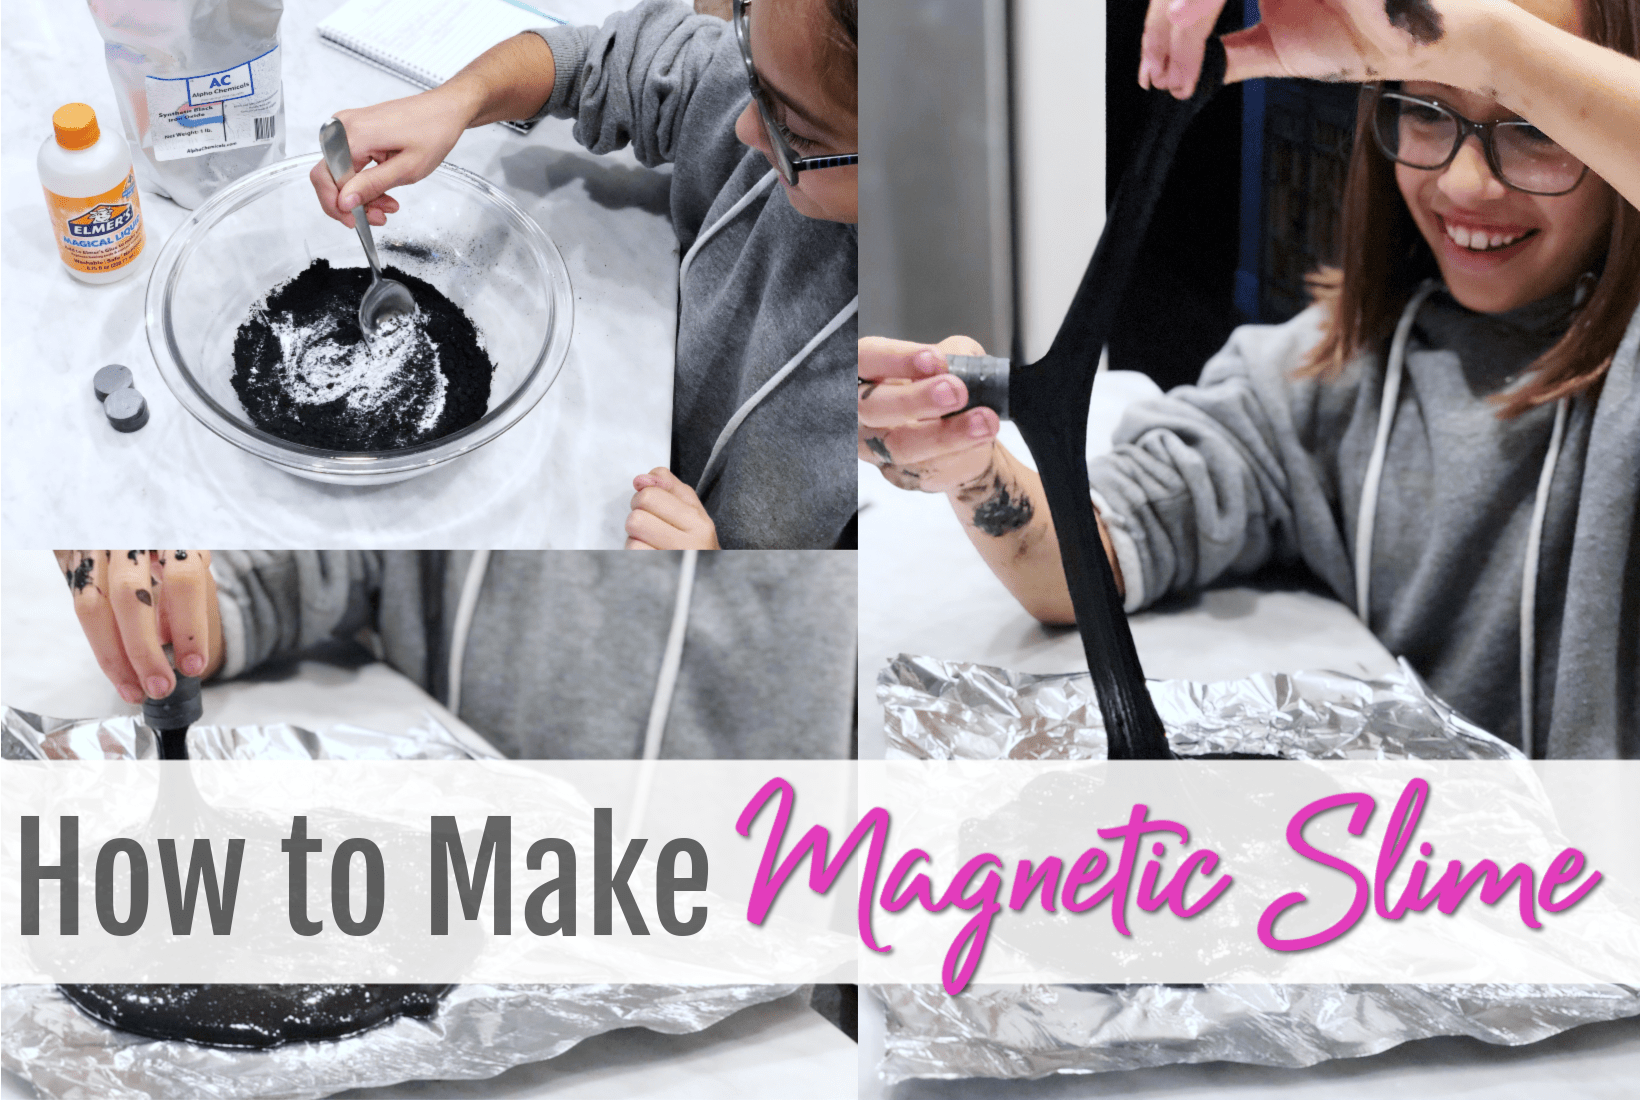 How to make Magnetic Slime, DIY Recipe, Easy tutorial, activities for kids, science project